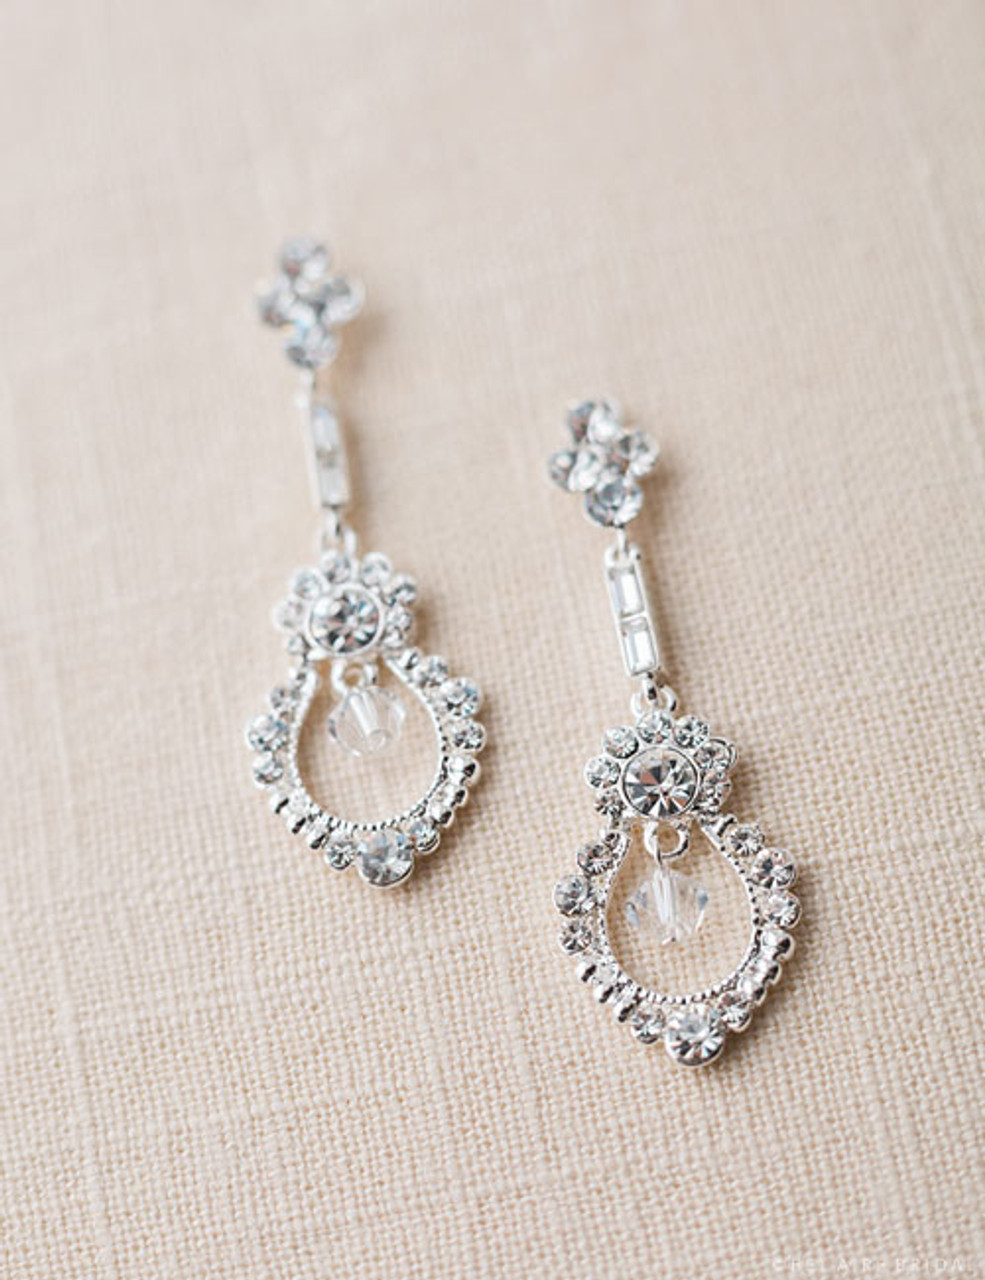 Bel aire bridal jewelry earrings ea205 frame crystal for Bel aire bridal jewelry